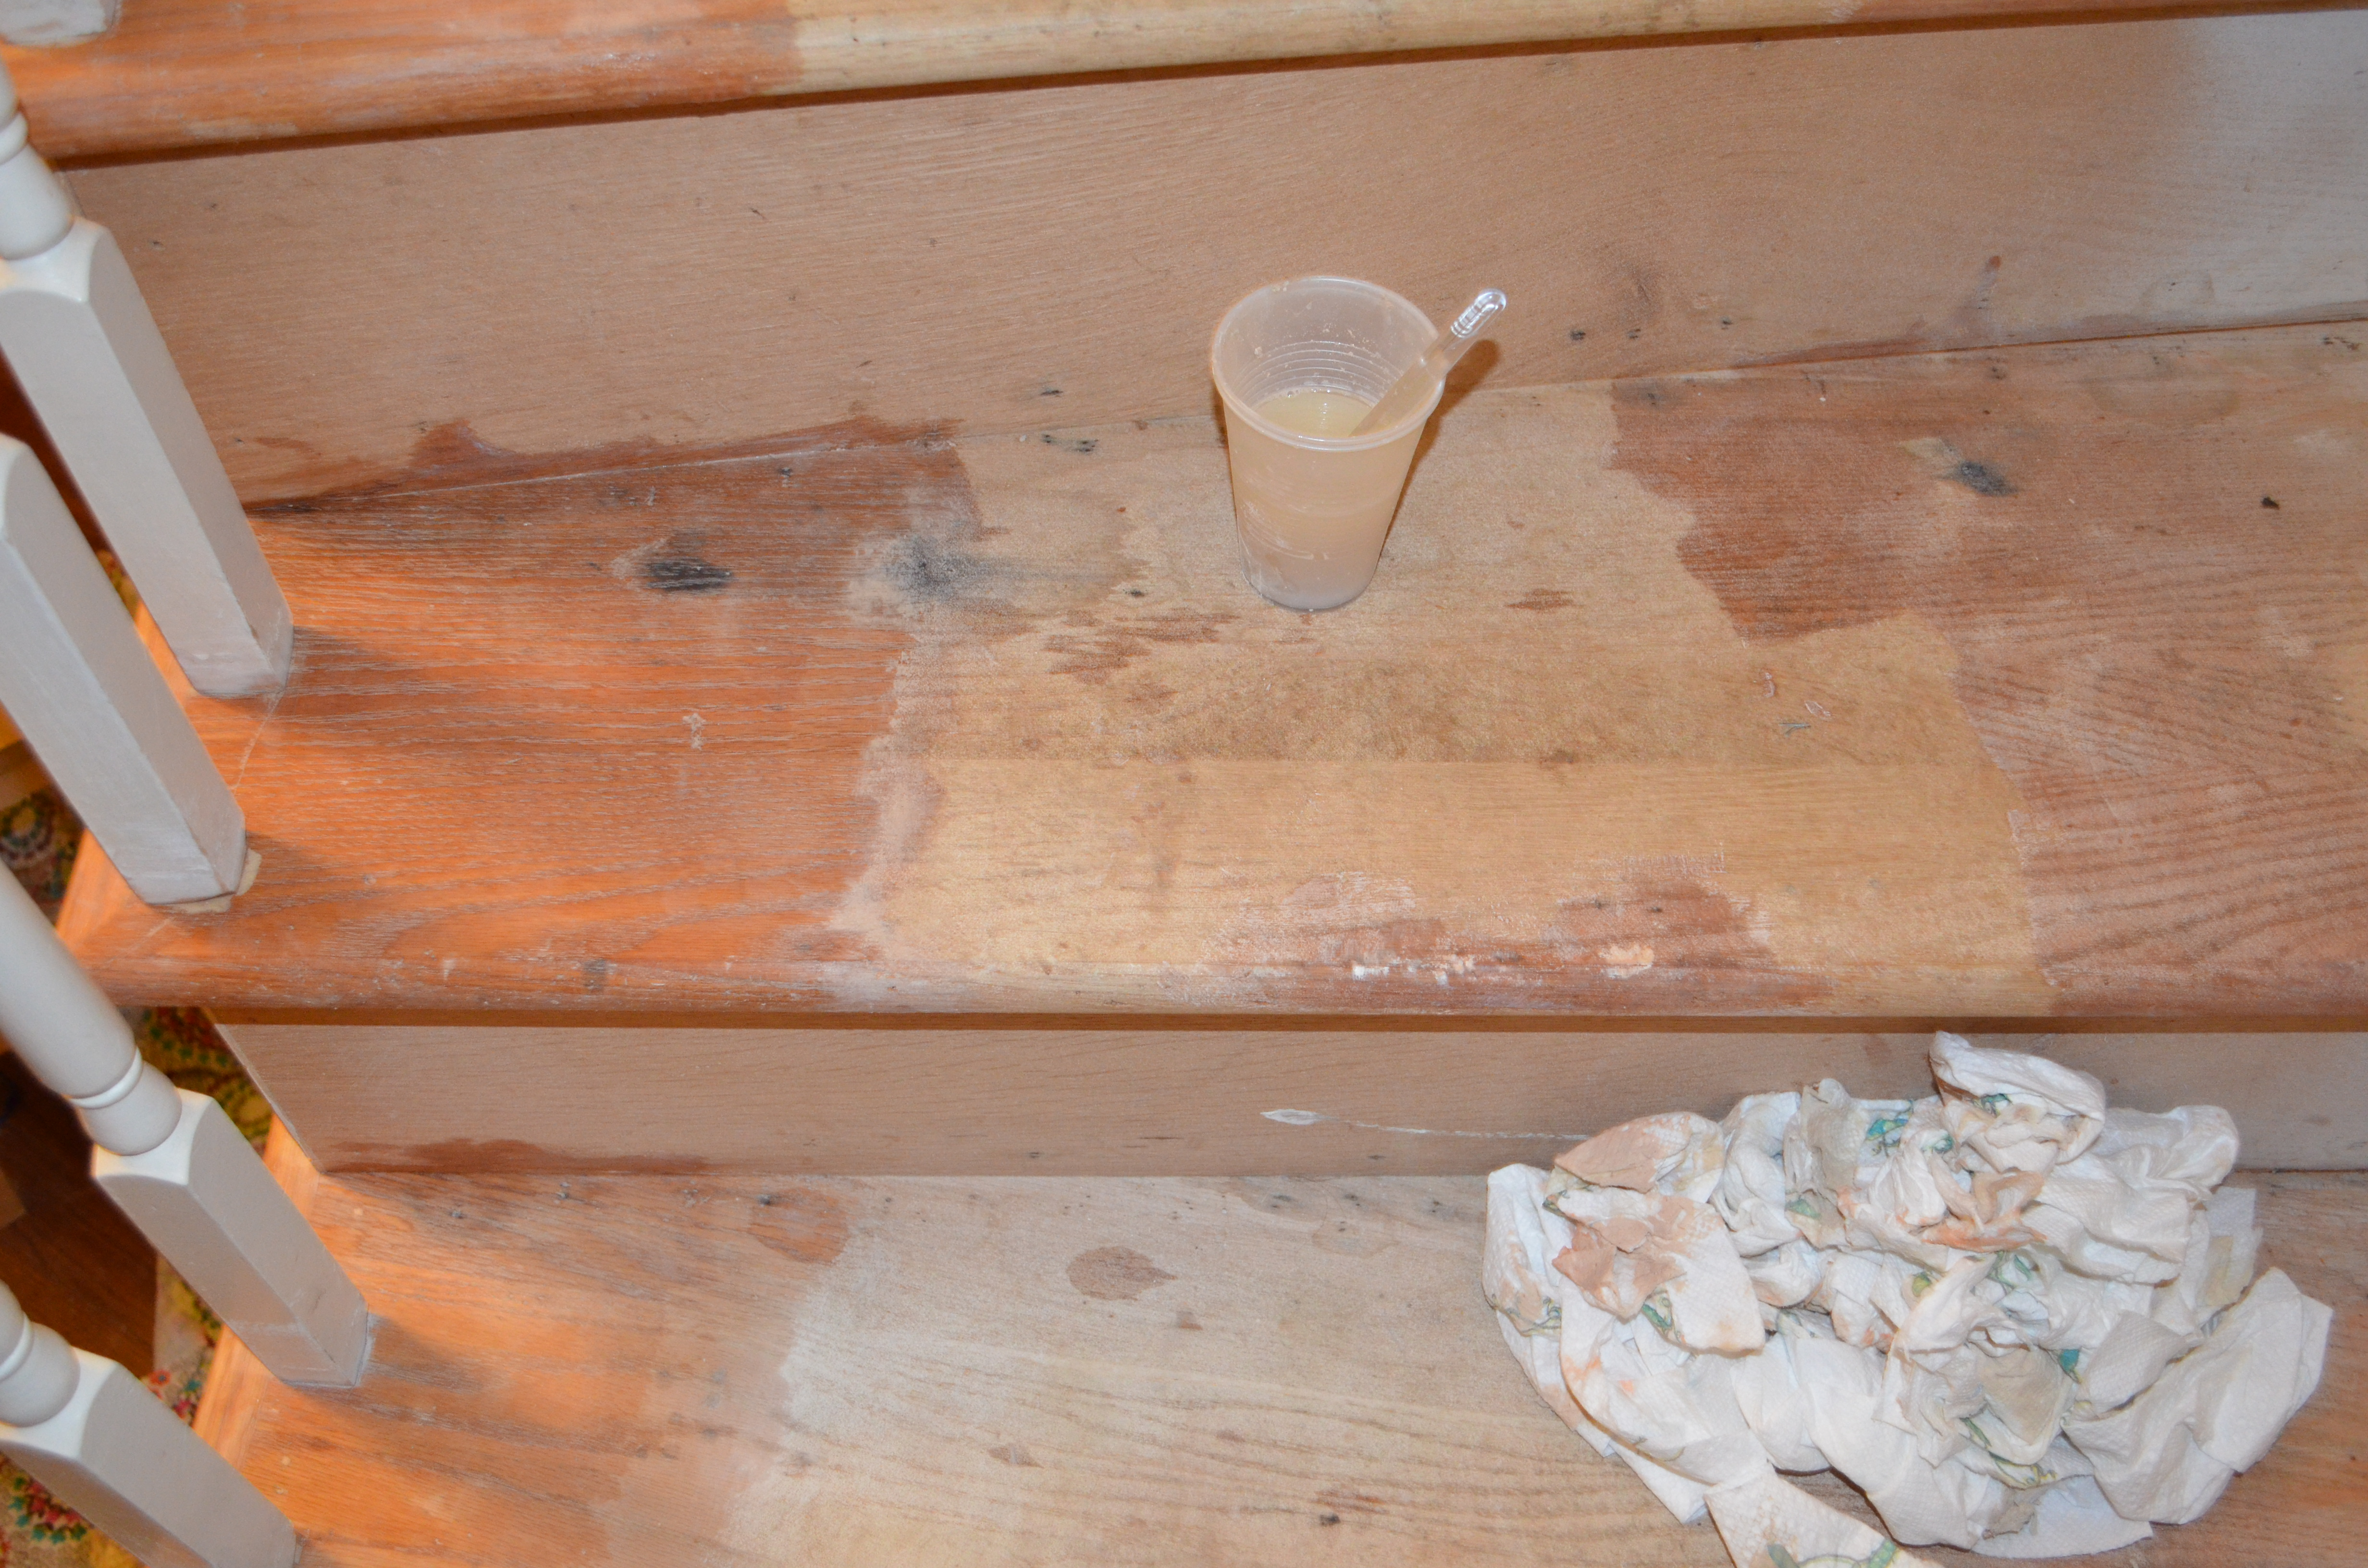 Staircase 4: Filling Holes, Sanding + Stripping